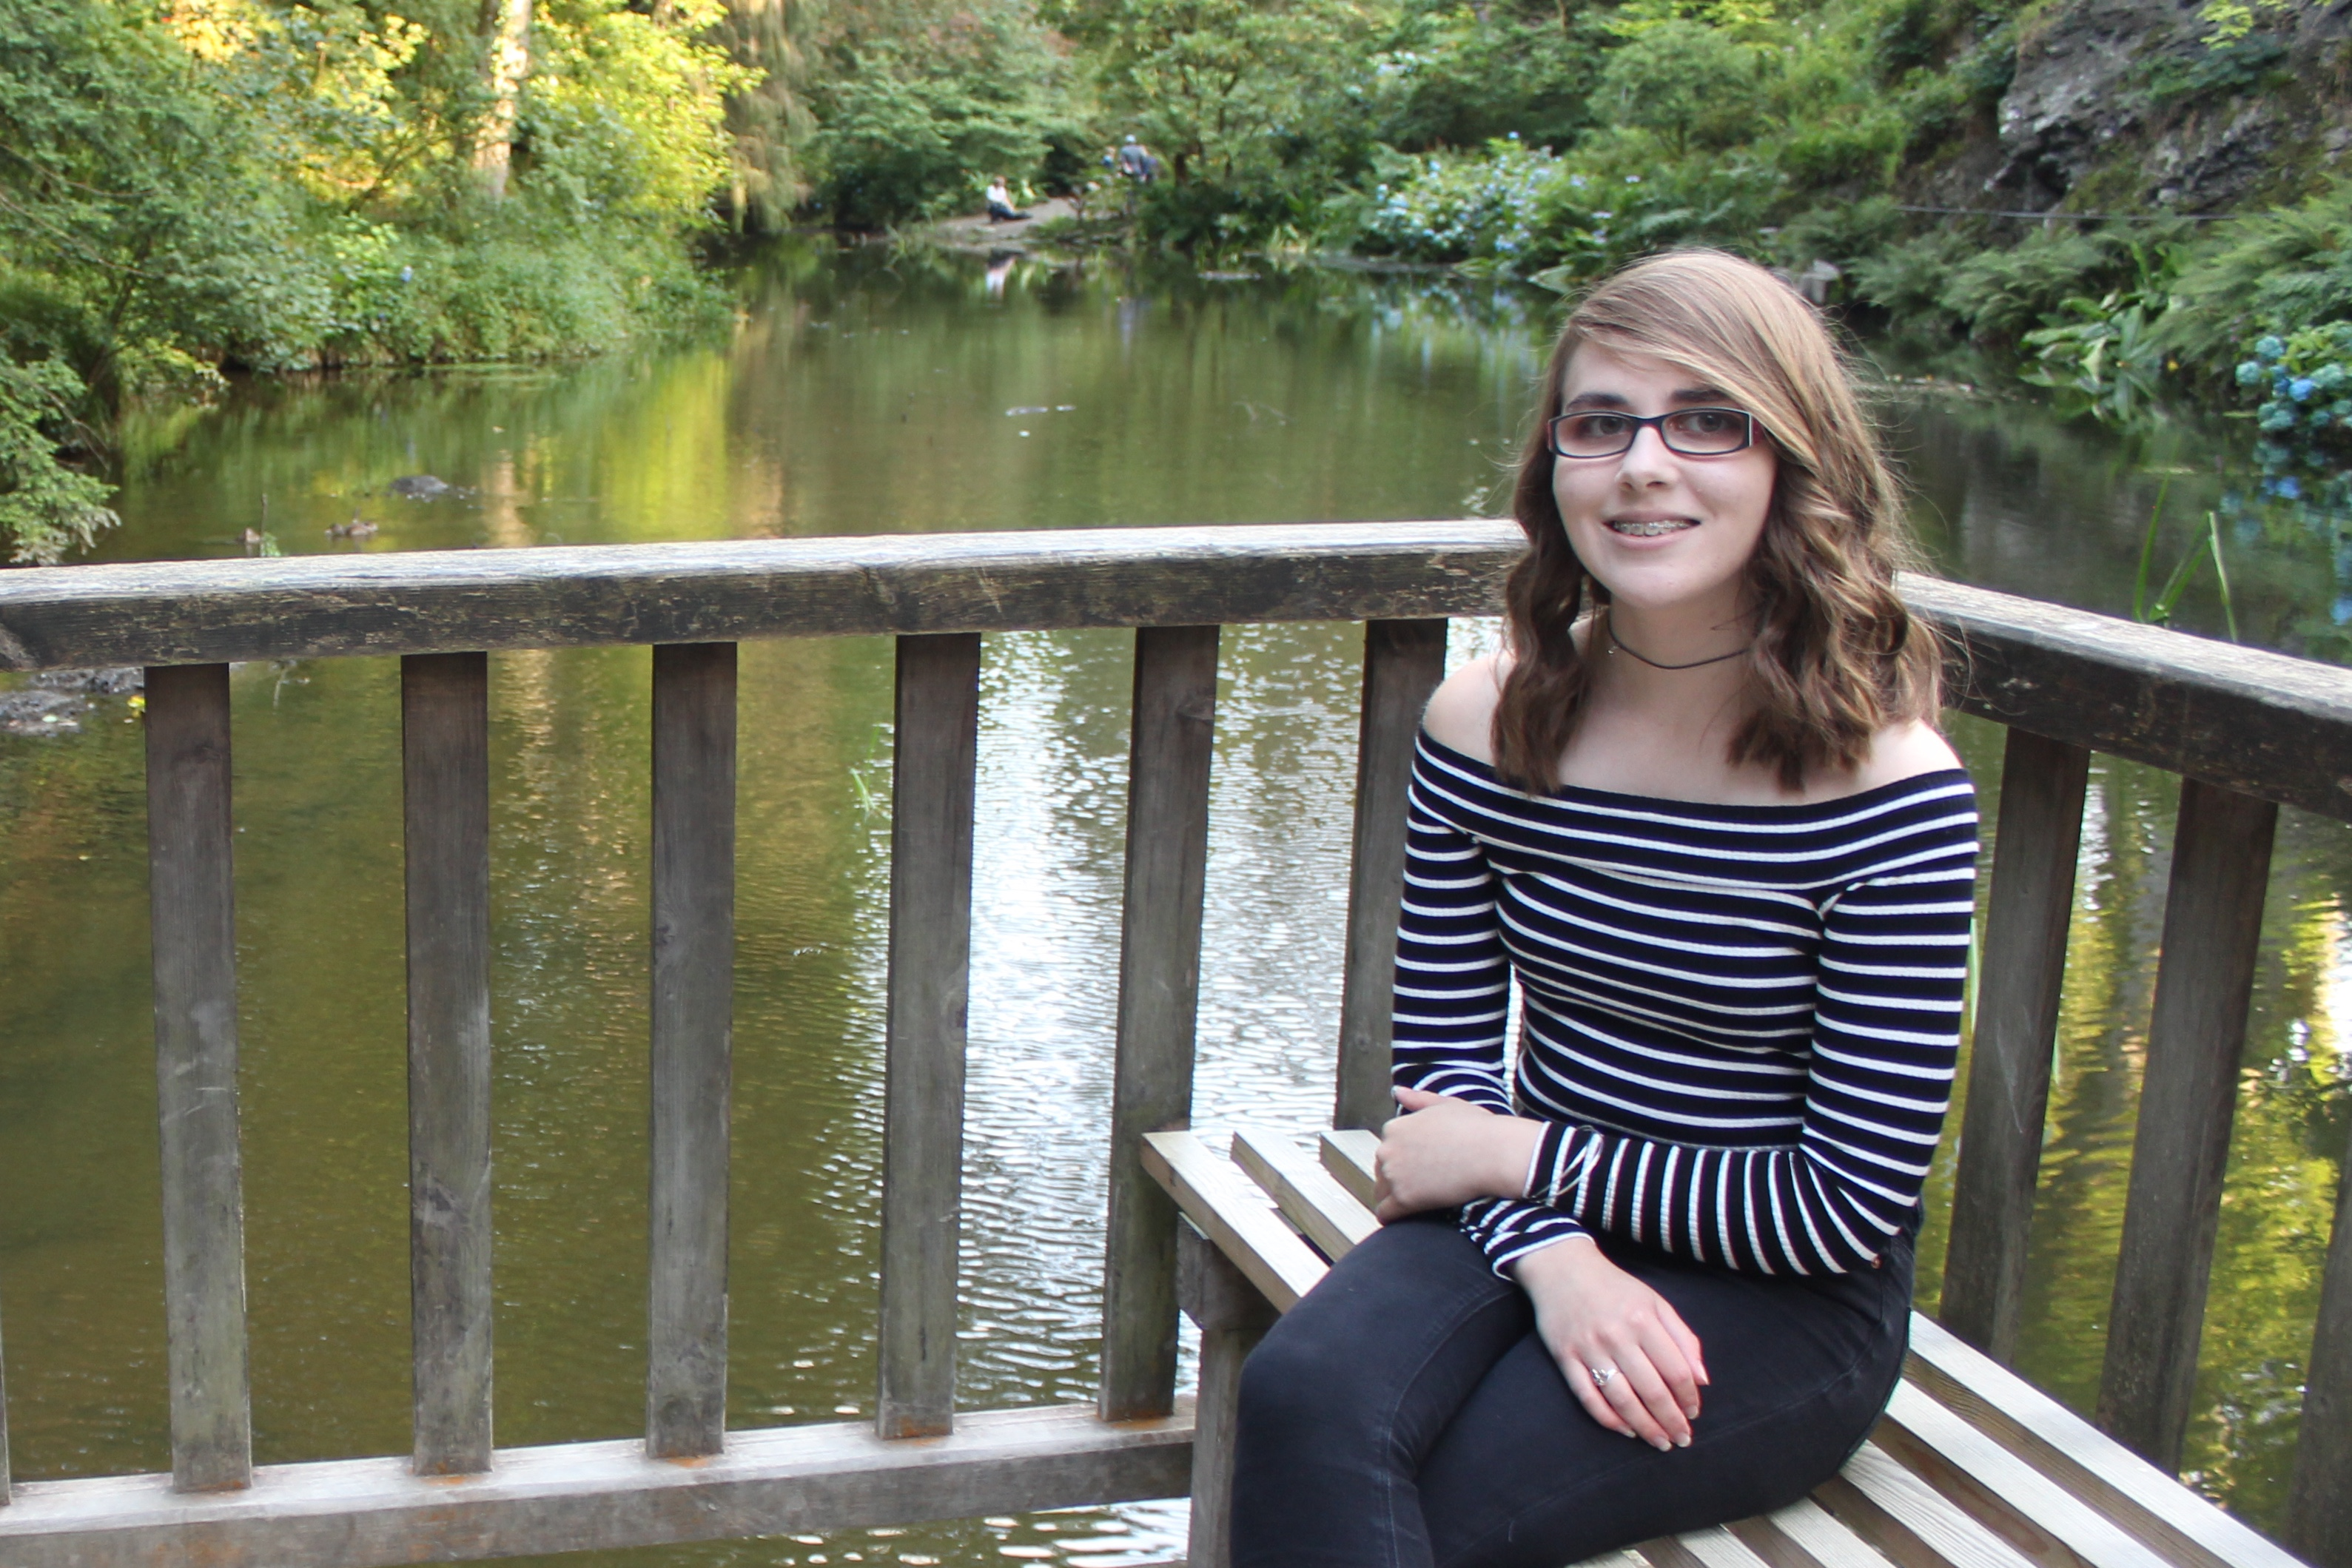 The reality of losing sight: A photo of Elin sitting on a bench in front of the river